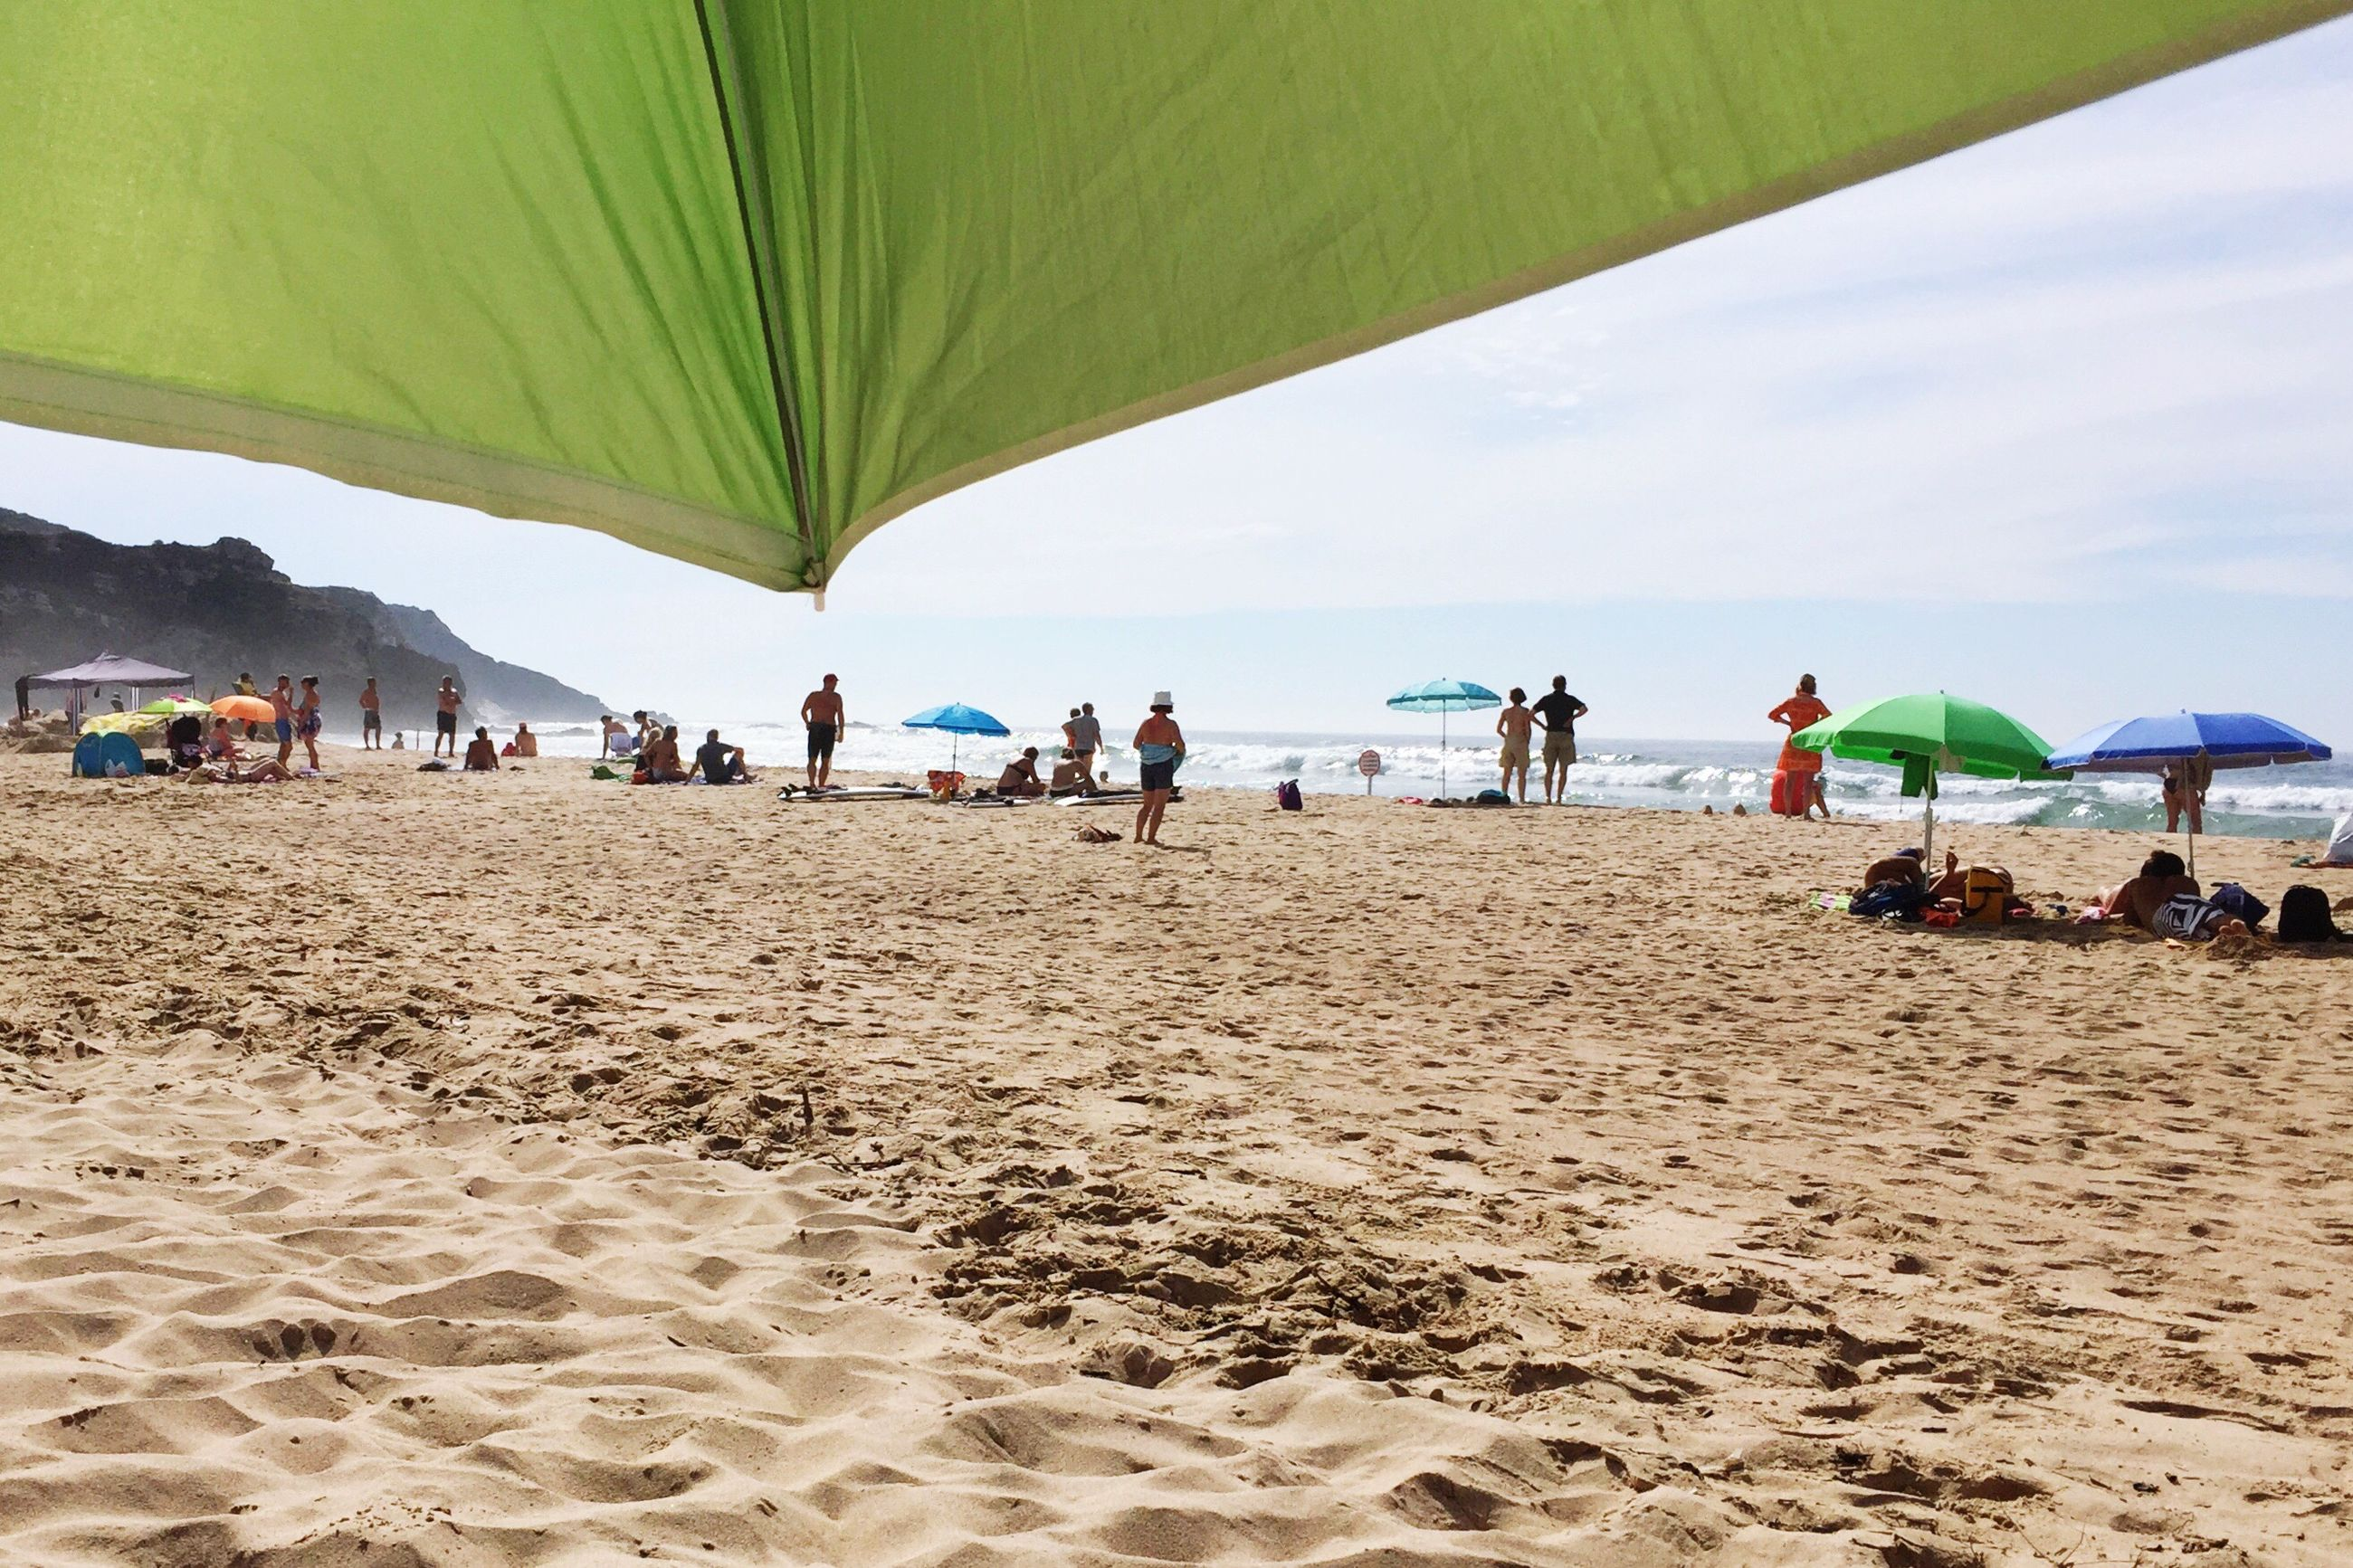 beach, sand, parasol, travel, water, vacations, leisure activity, large group of people, lifestyles, sea, tourist, tourism, sunshade, enjoyment, beach holiday, cloud - sky, shore, day, sky, nature, weekend activities, tranquility, outdoors, green color, tranquil scene, enjoying